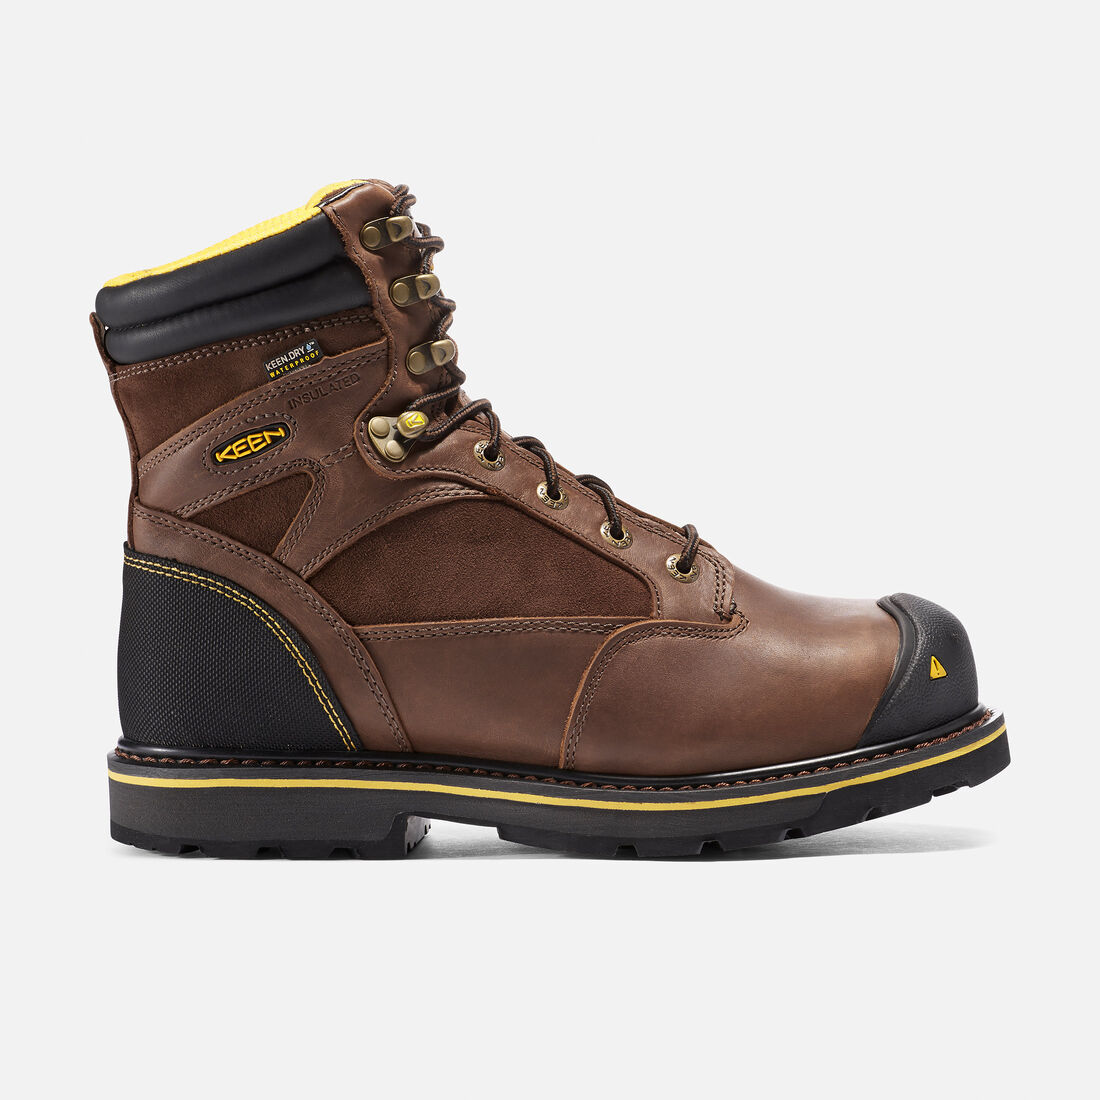 Men's Sheridan Insulated (Composite Toe) in Cascade Brown - large view.